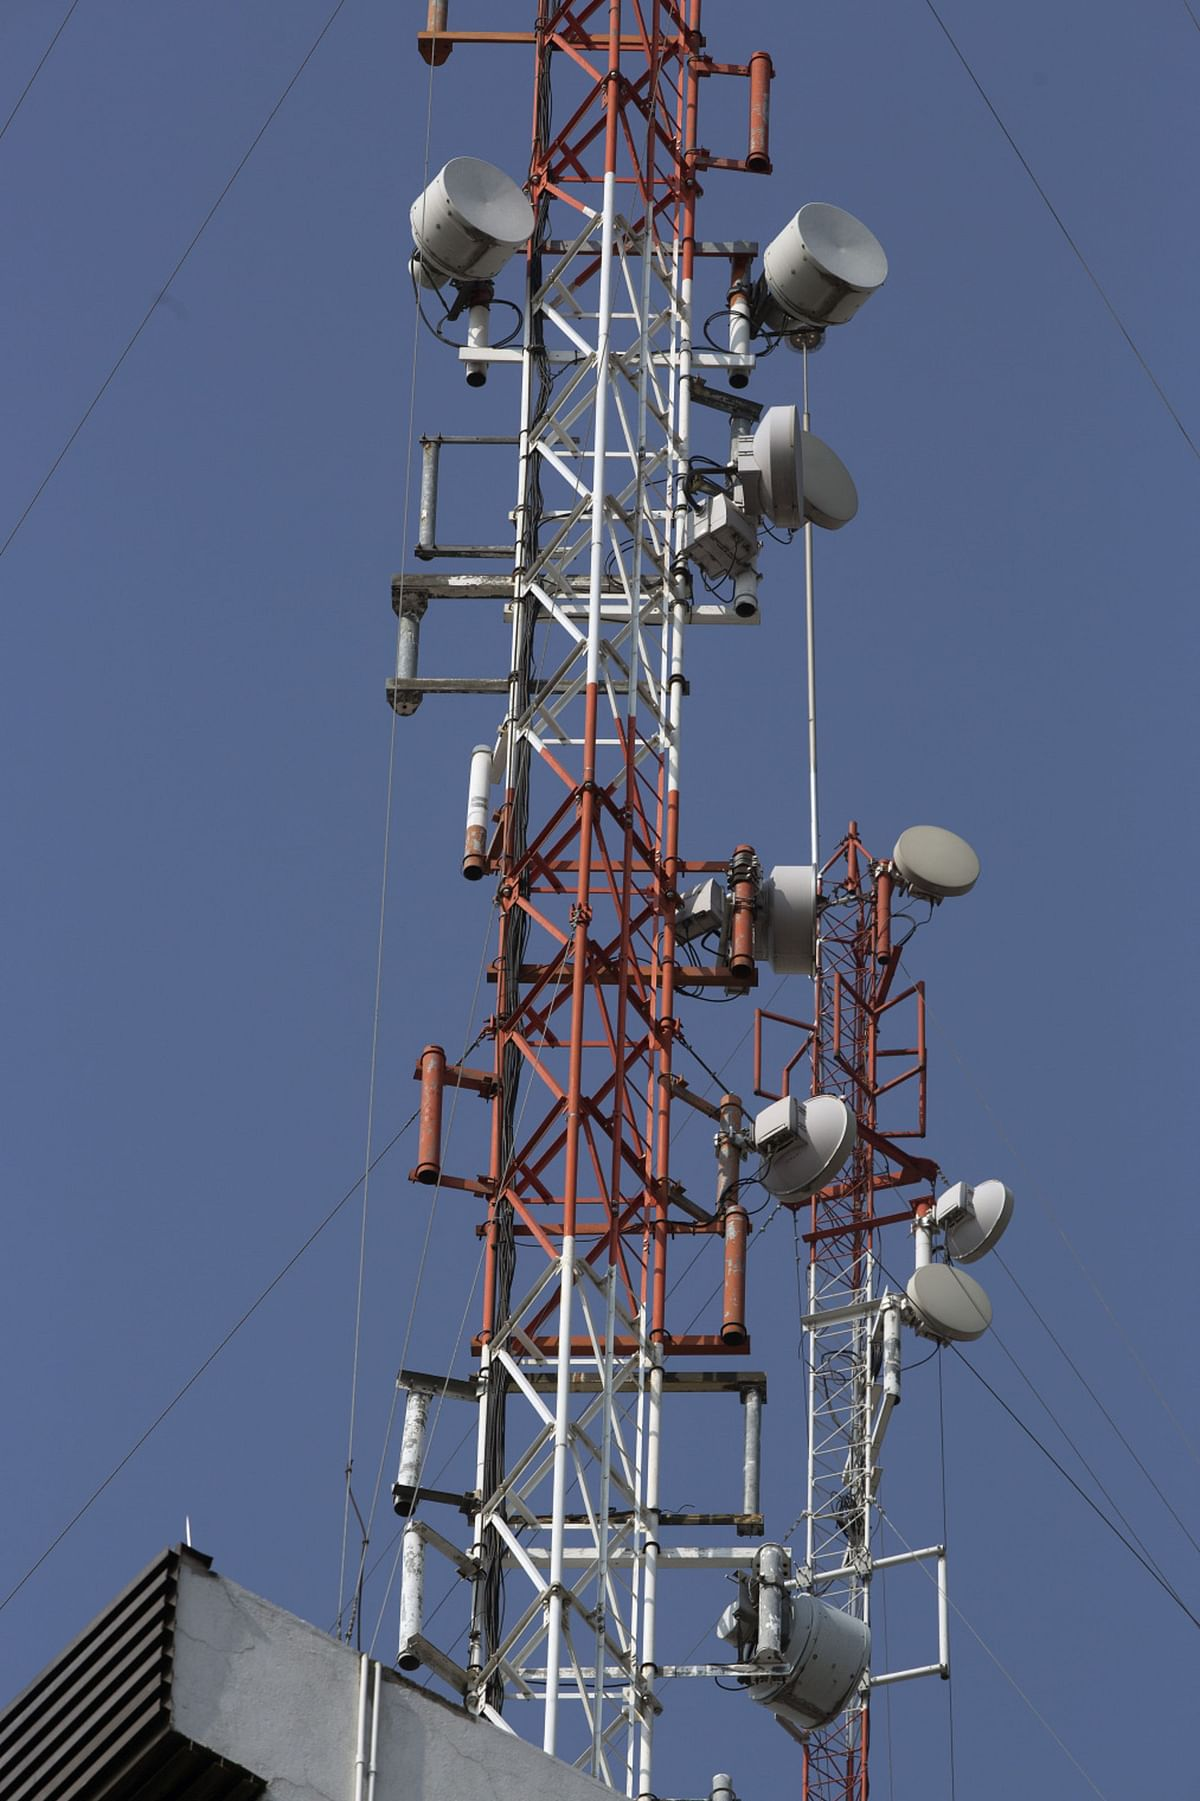 Indian Telecom Industry - Outlook Stable; Steady Improvement Continues In The Performance Of Telcos: ICRA